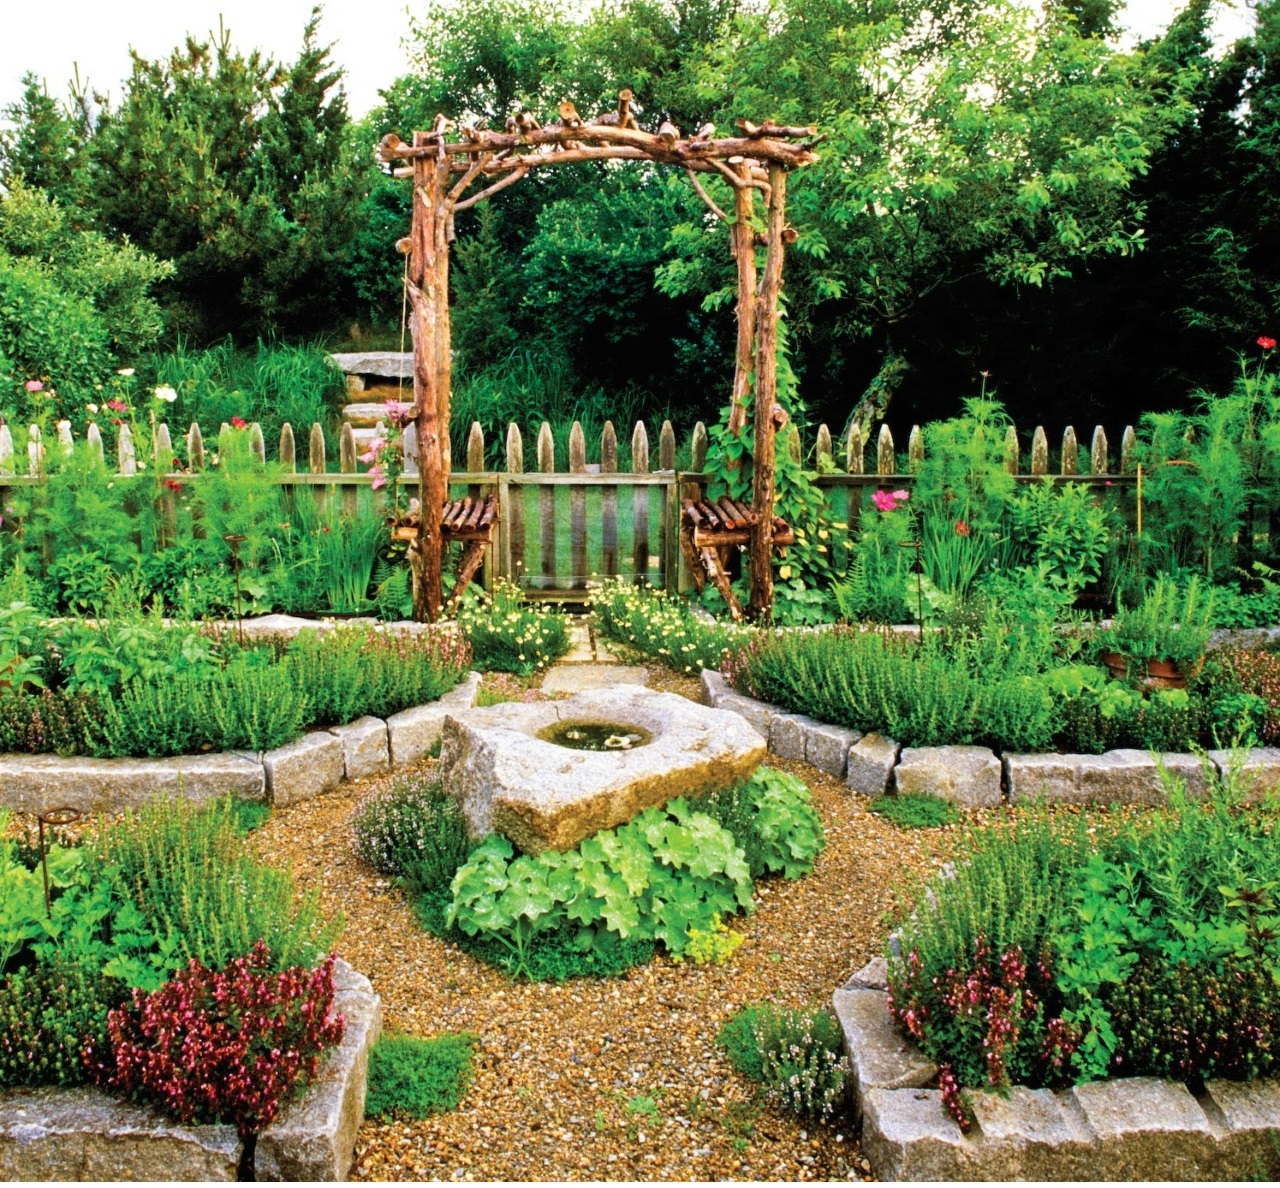 5 Top Tips on Approaching a Garden Renovation